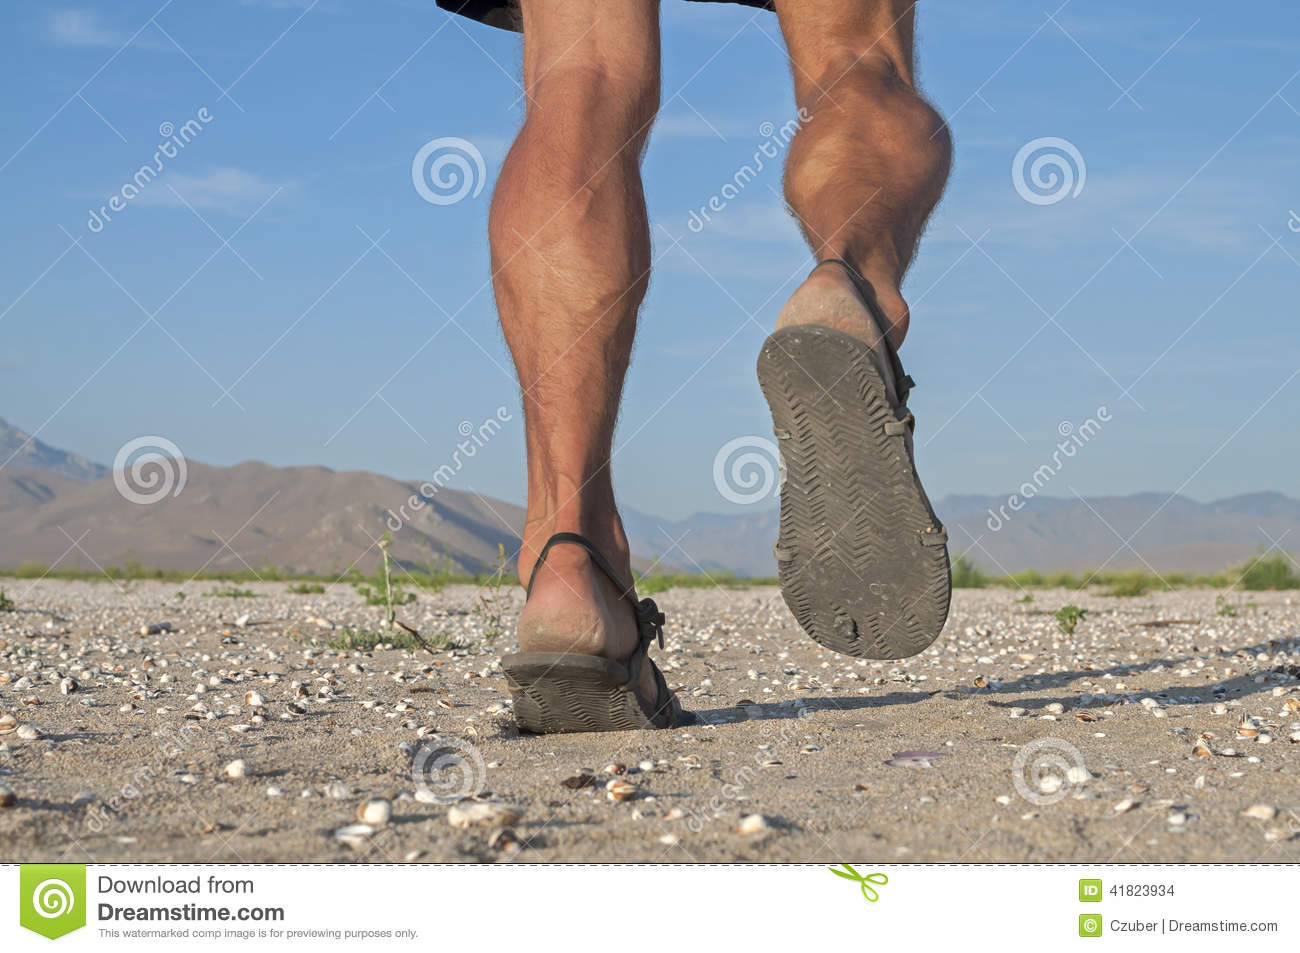 Running in sandals stock photo  Image of achilles, ankles